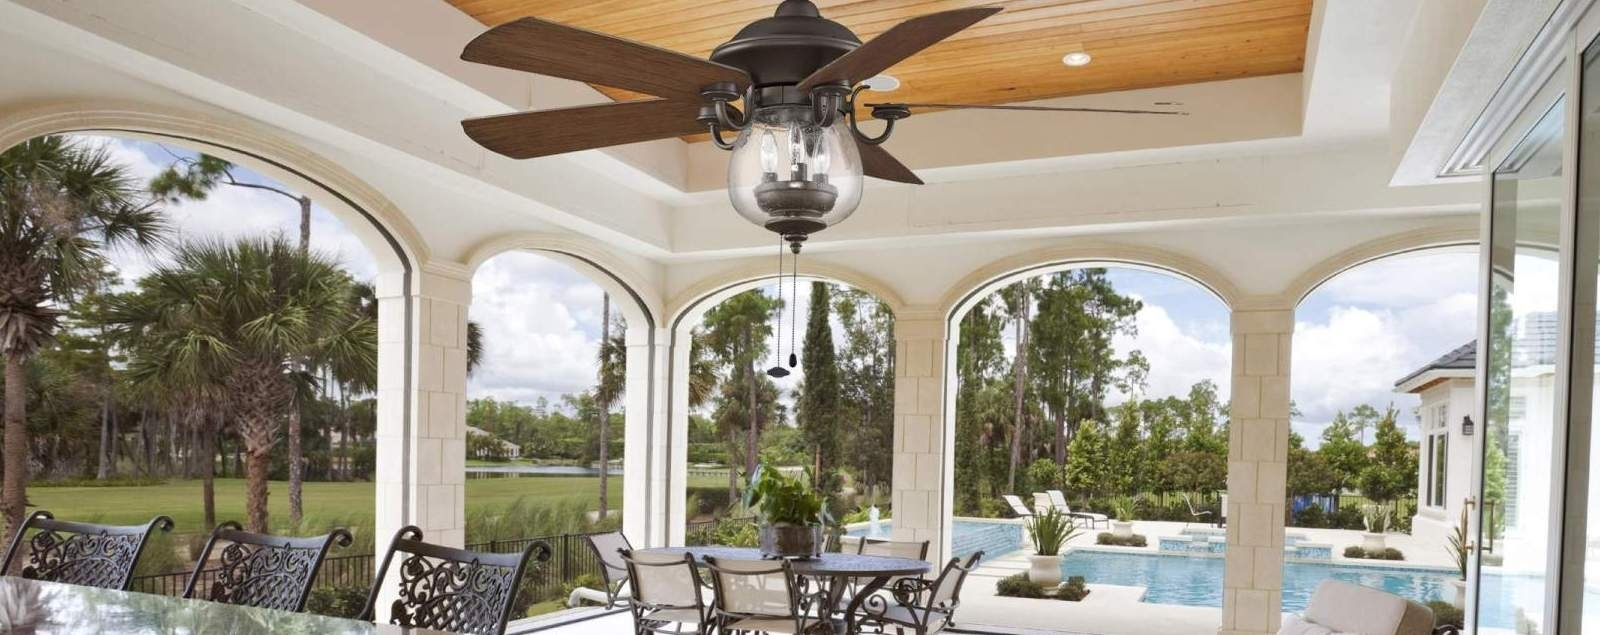 Outdoor Ceiling Fans For Windy Areas Regarding Best And Newest Outdoor Ceiling Fans – Shop Wet, Dry, And Damp Rated Outdoor Fans (View 4 of 20)